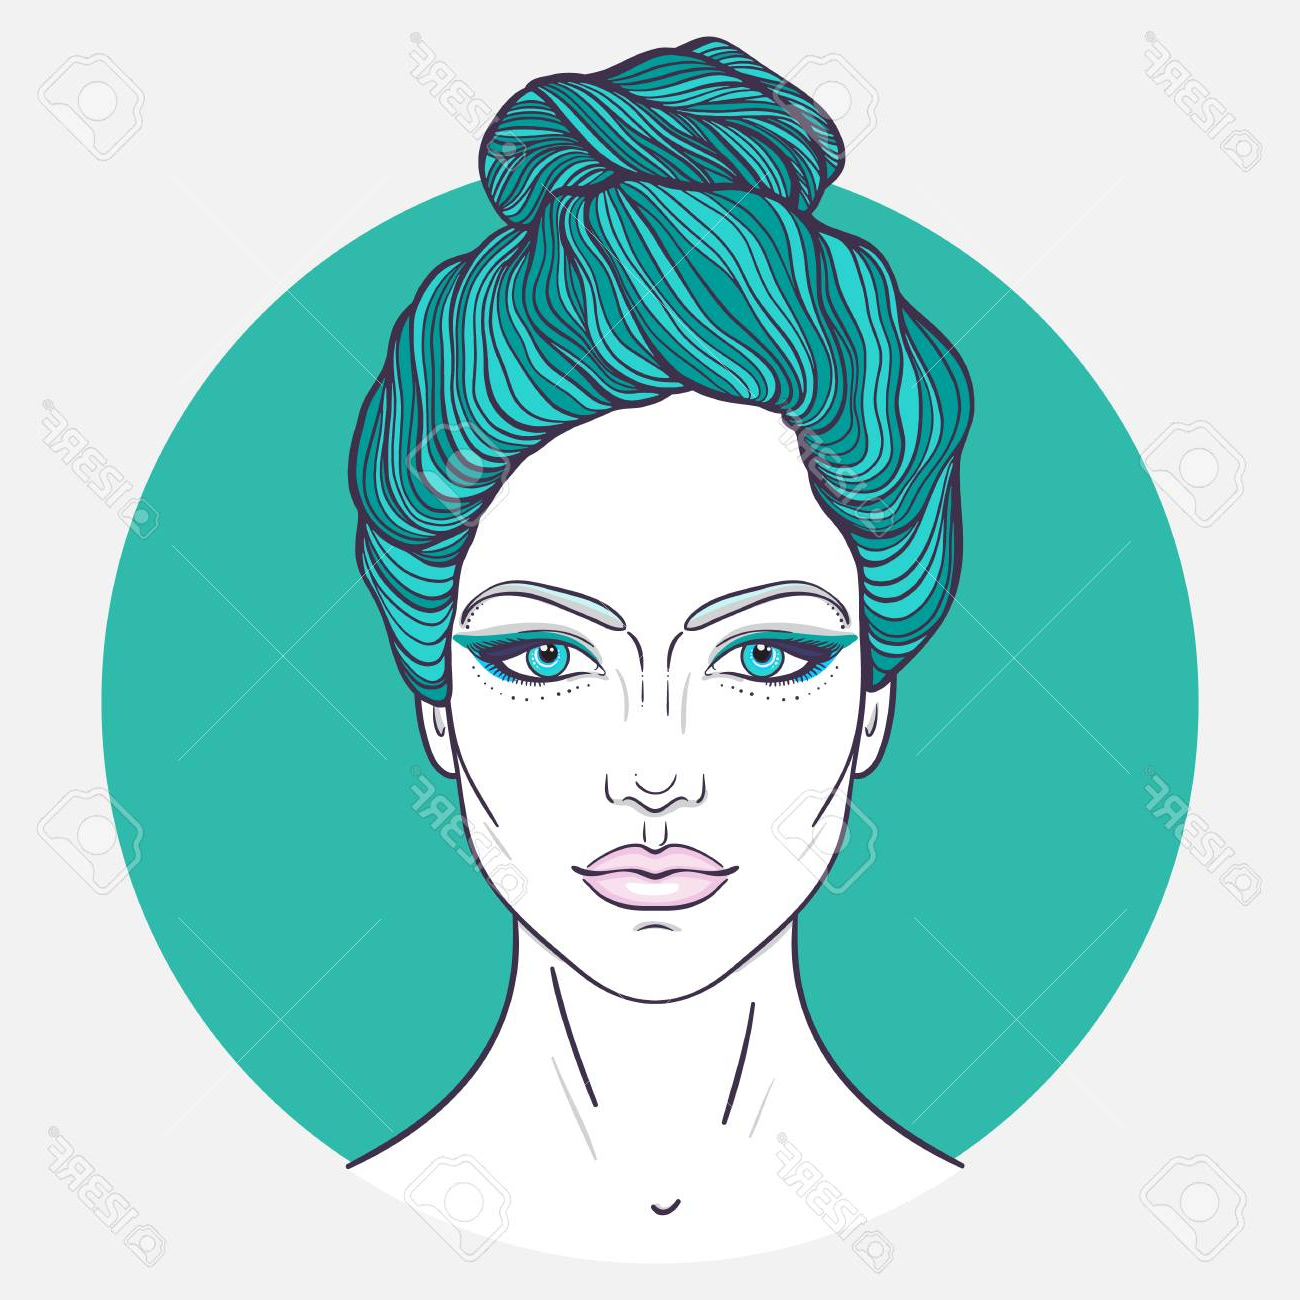 2019 Decorative Topknot Hairstyles Regarding Beautiful Girl Face With Top Knot Hair Style, Make Up And Neutral. (View 3 of 20)